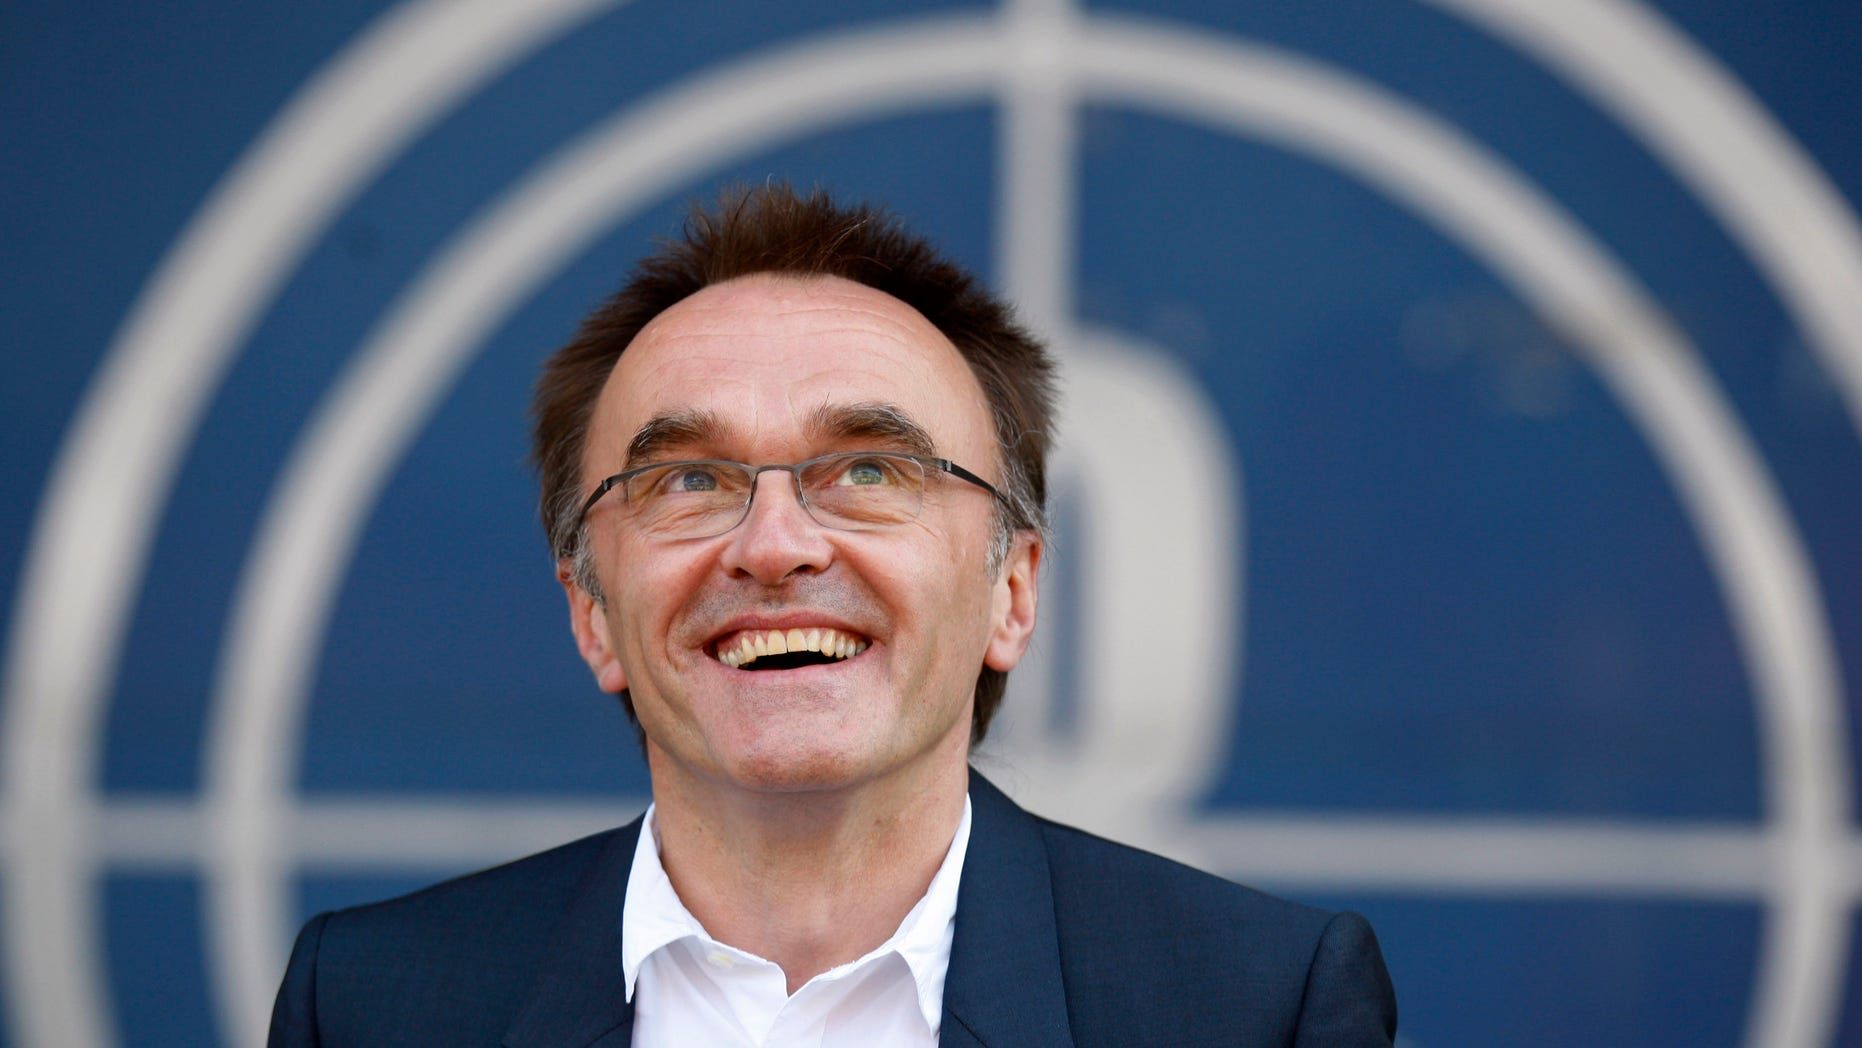 """June 17, 2012: This file photo shows Danny Boyle, the Oscar-winning director of """"Slumdog Millionaire"""" as he speaks to the media in east London after being appointed to oversee the opening ceremony of the 2012 London Olympics."""